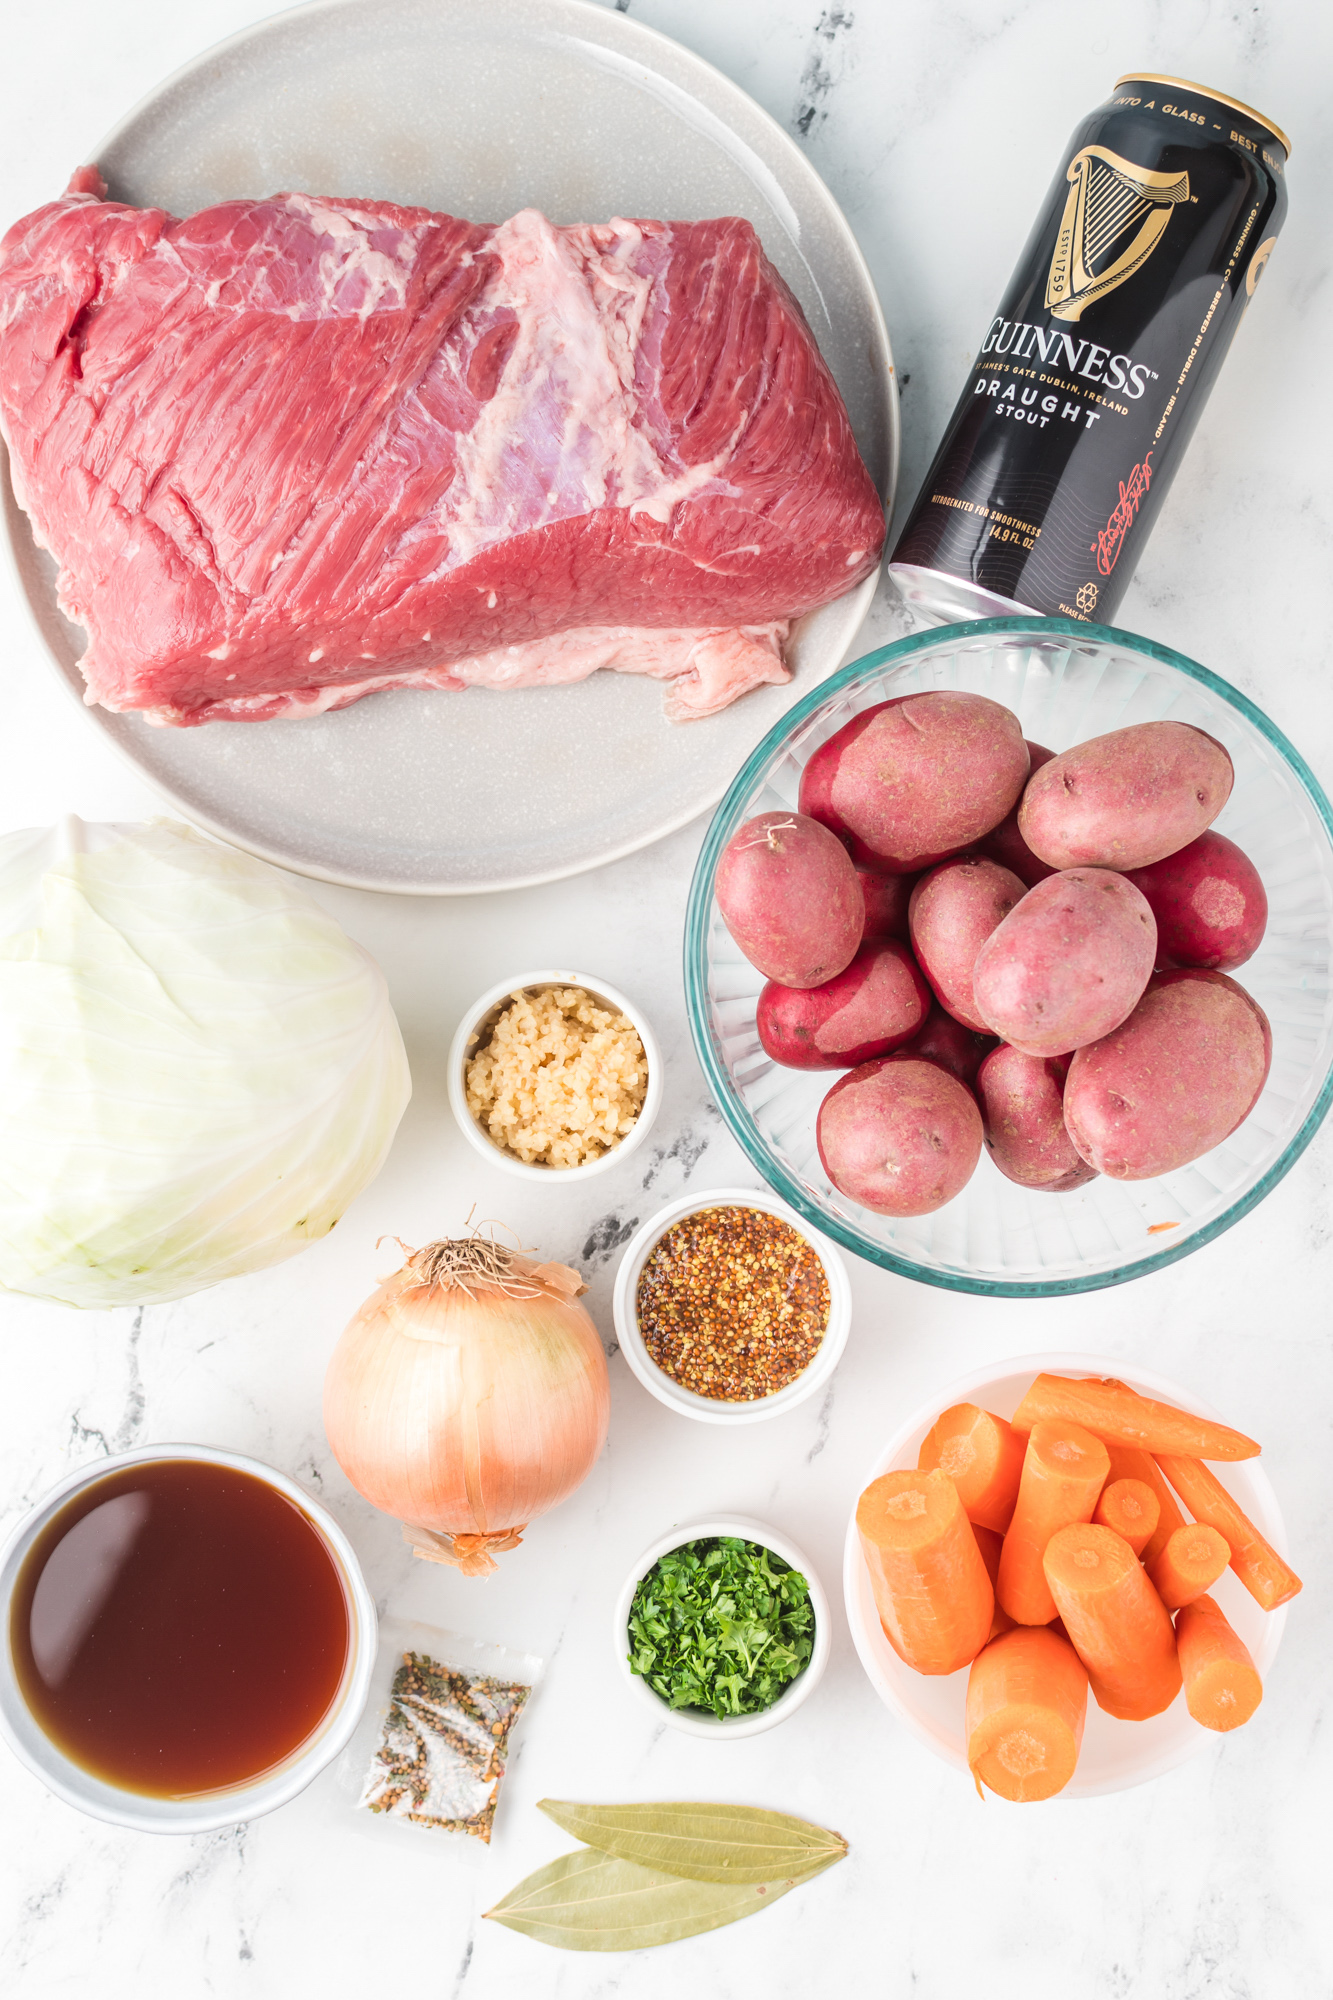 Instant Pot Corned Beef and Cabbage ingredients